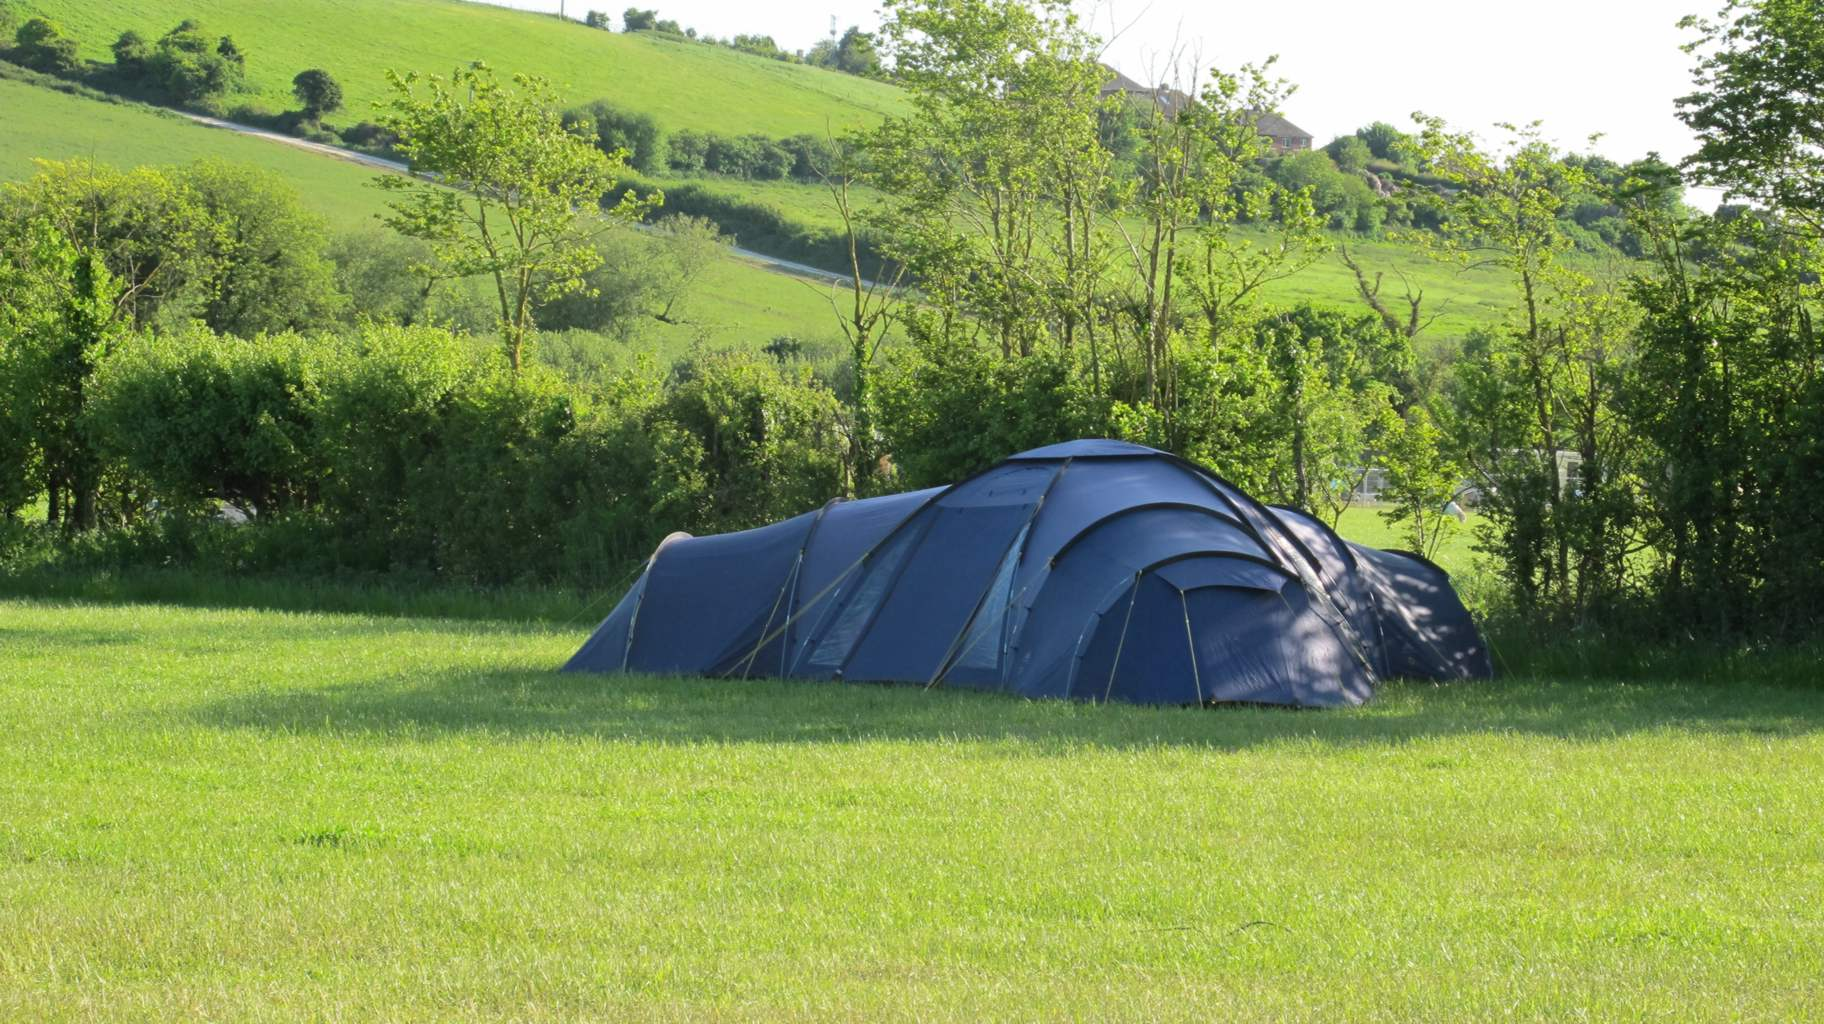 Camping at Northdown